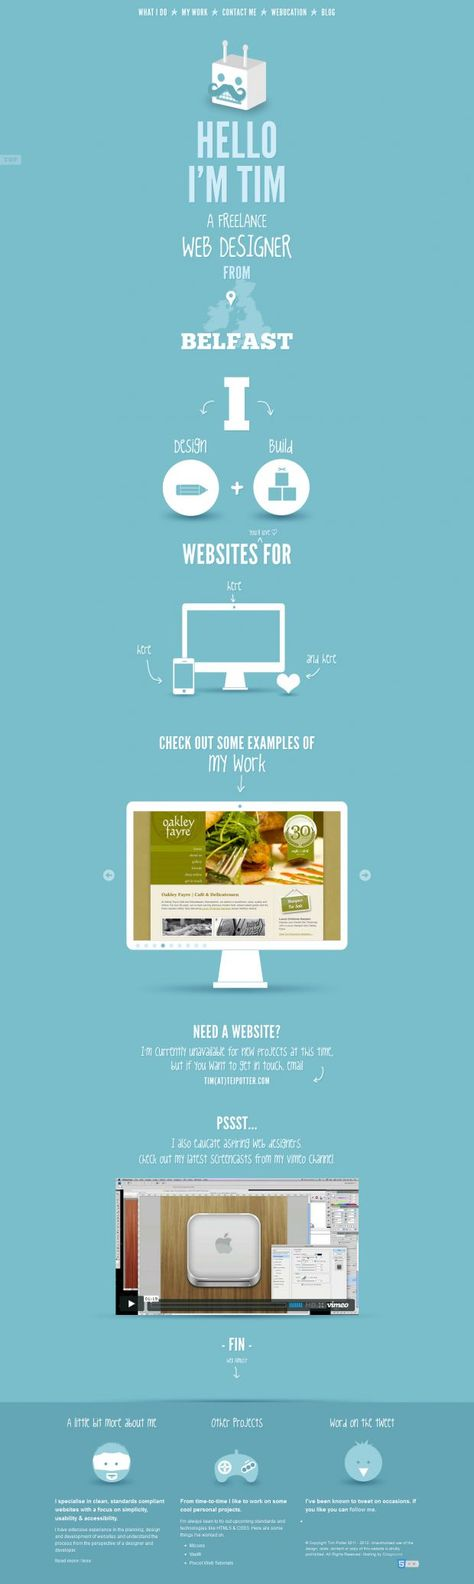 Dating web design inspiration